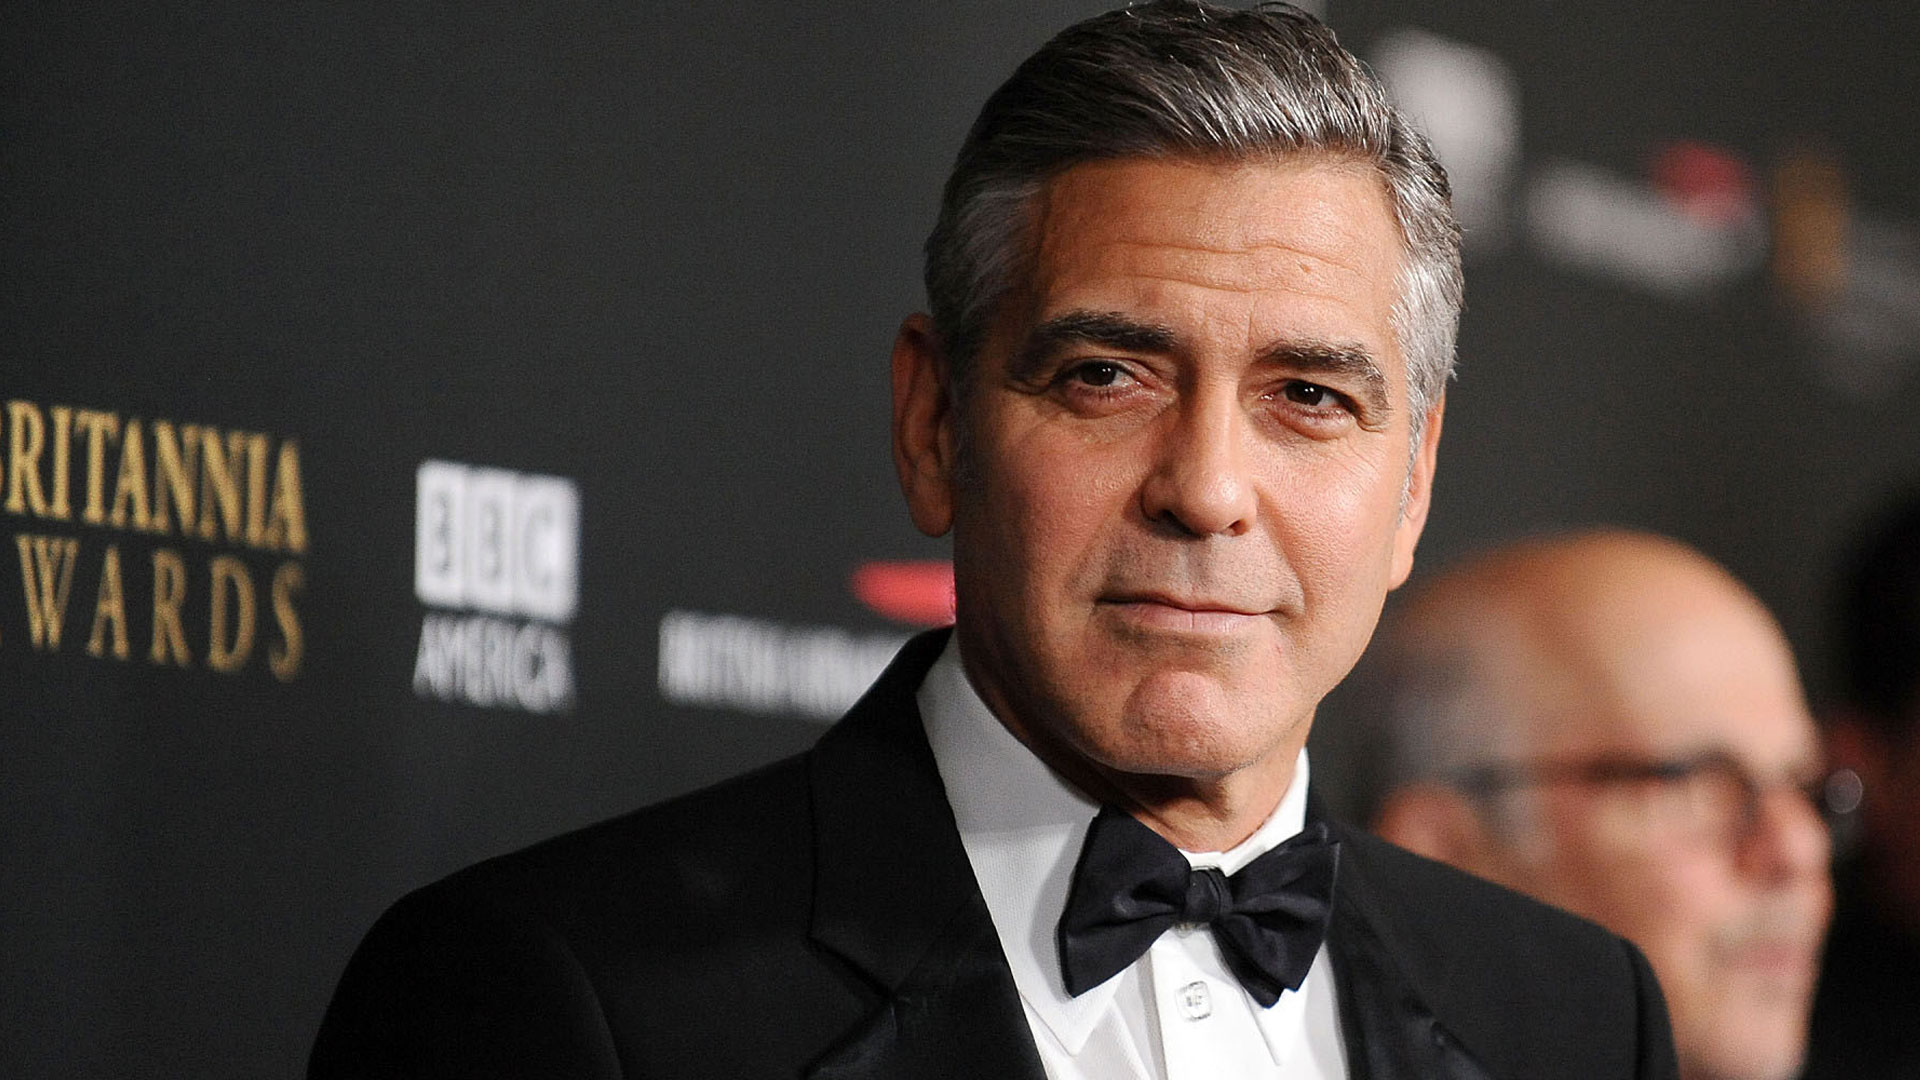 george-clooney-at-the-britannia-awards-2013-wallpaper-4622